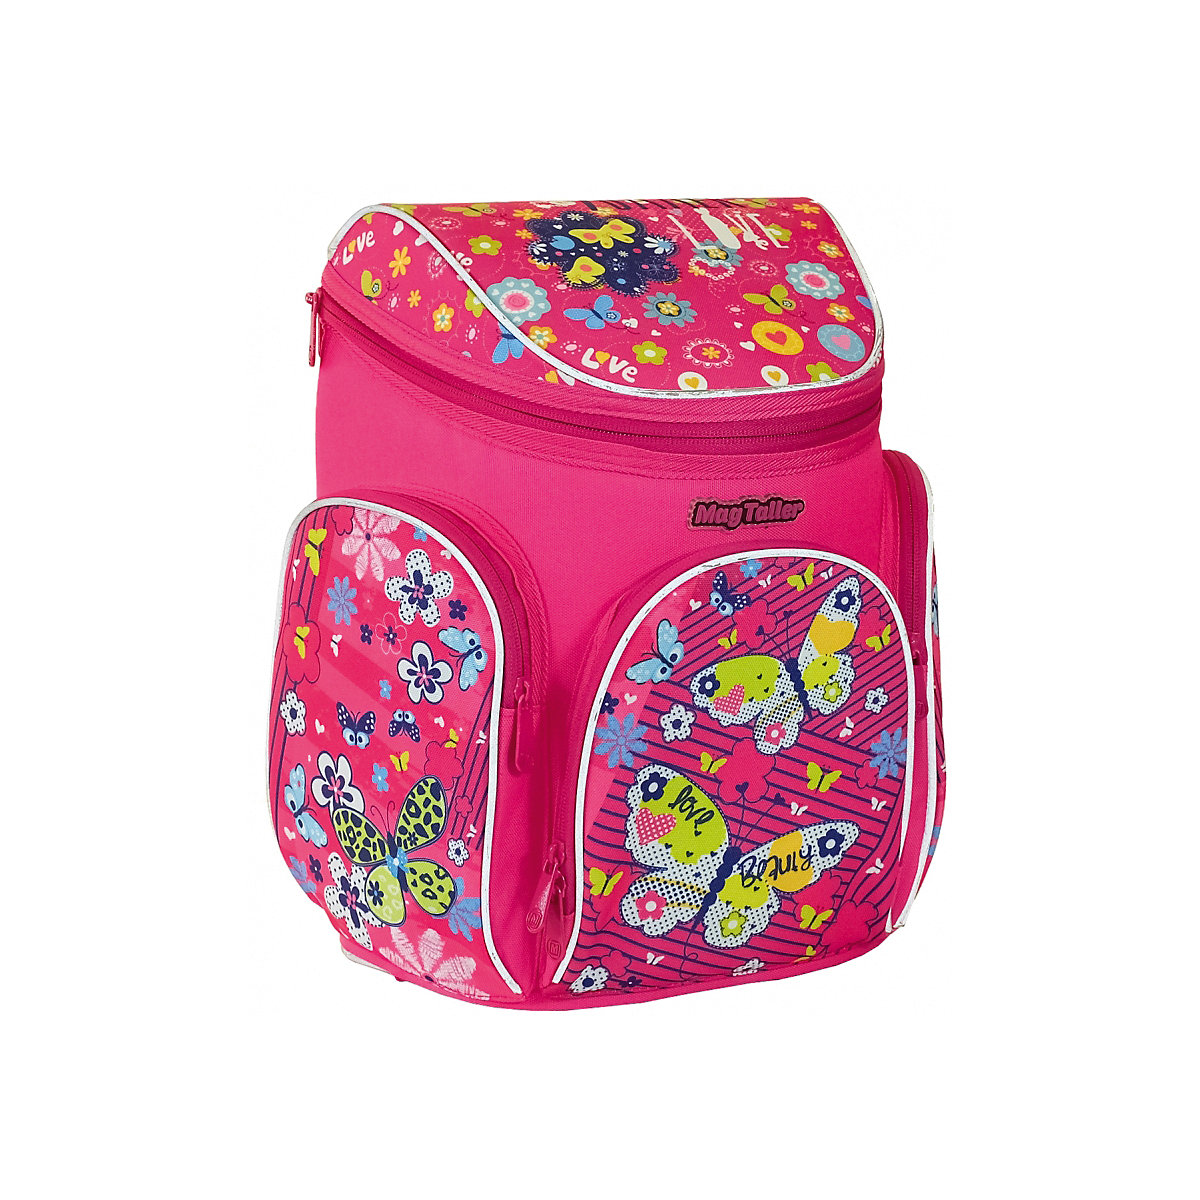 School Bags MAGTALLER 8316002 Schoolbag Backpack Orthopedic Bag For Boy And Girl Animals Flowers MTpromo